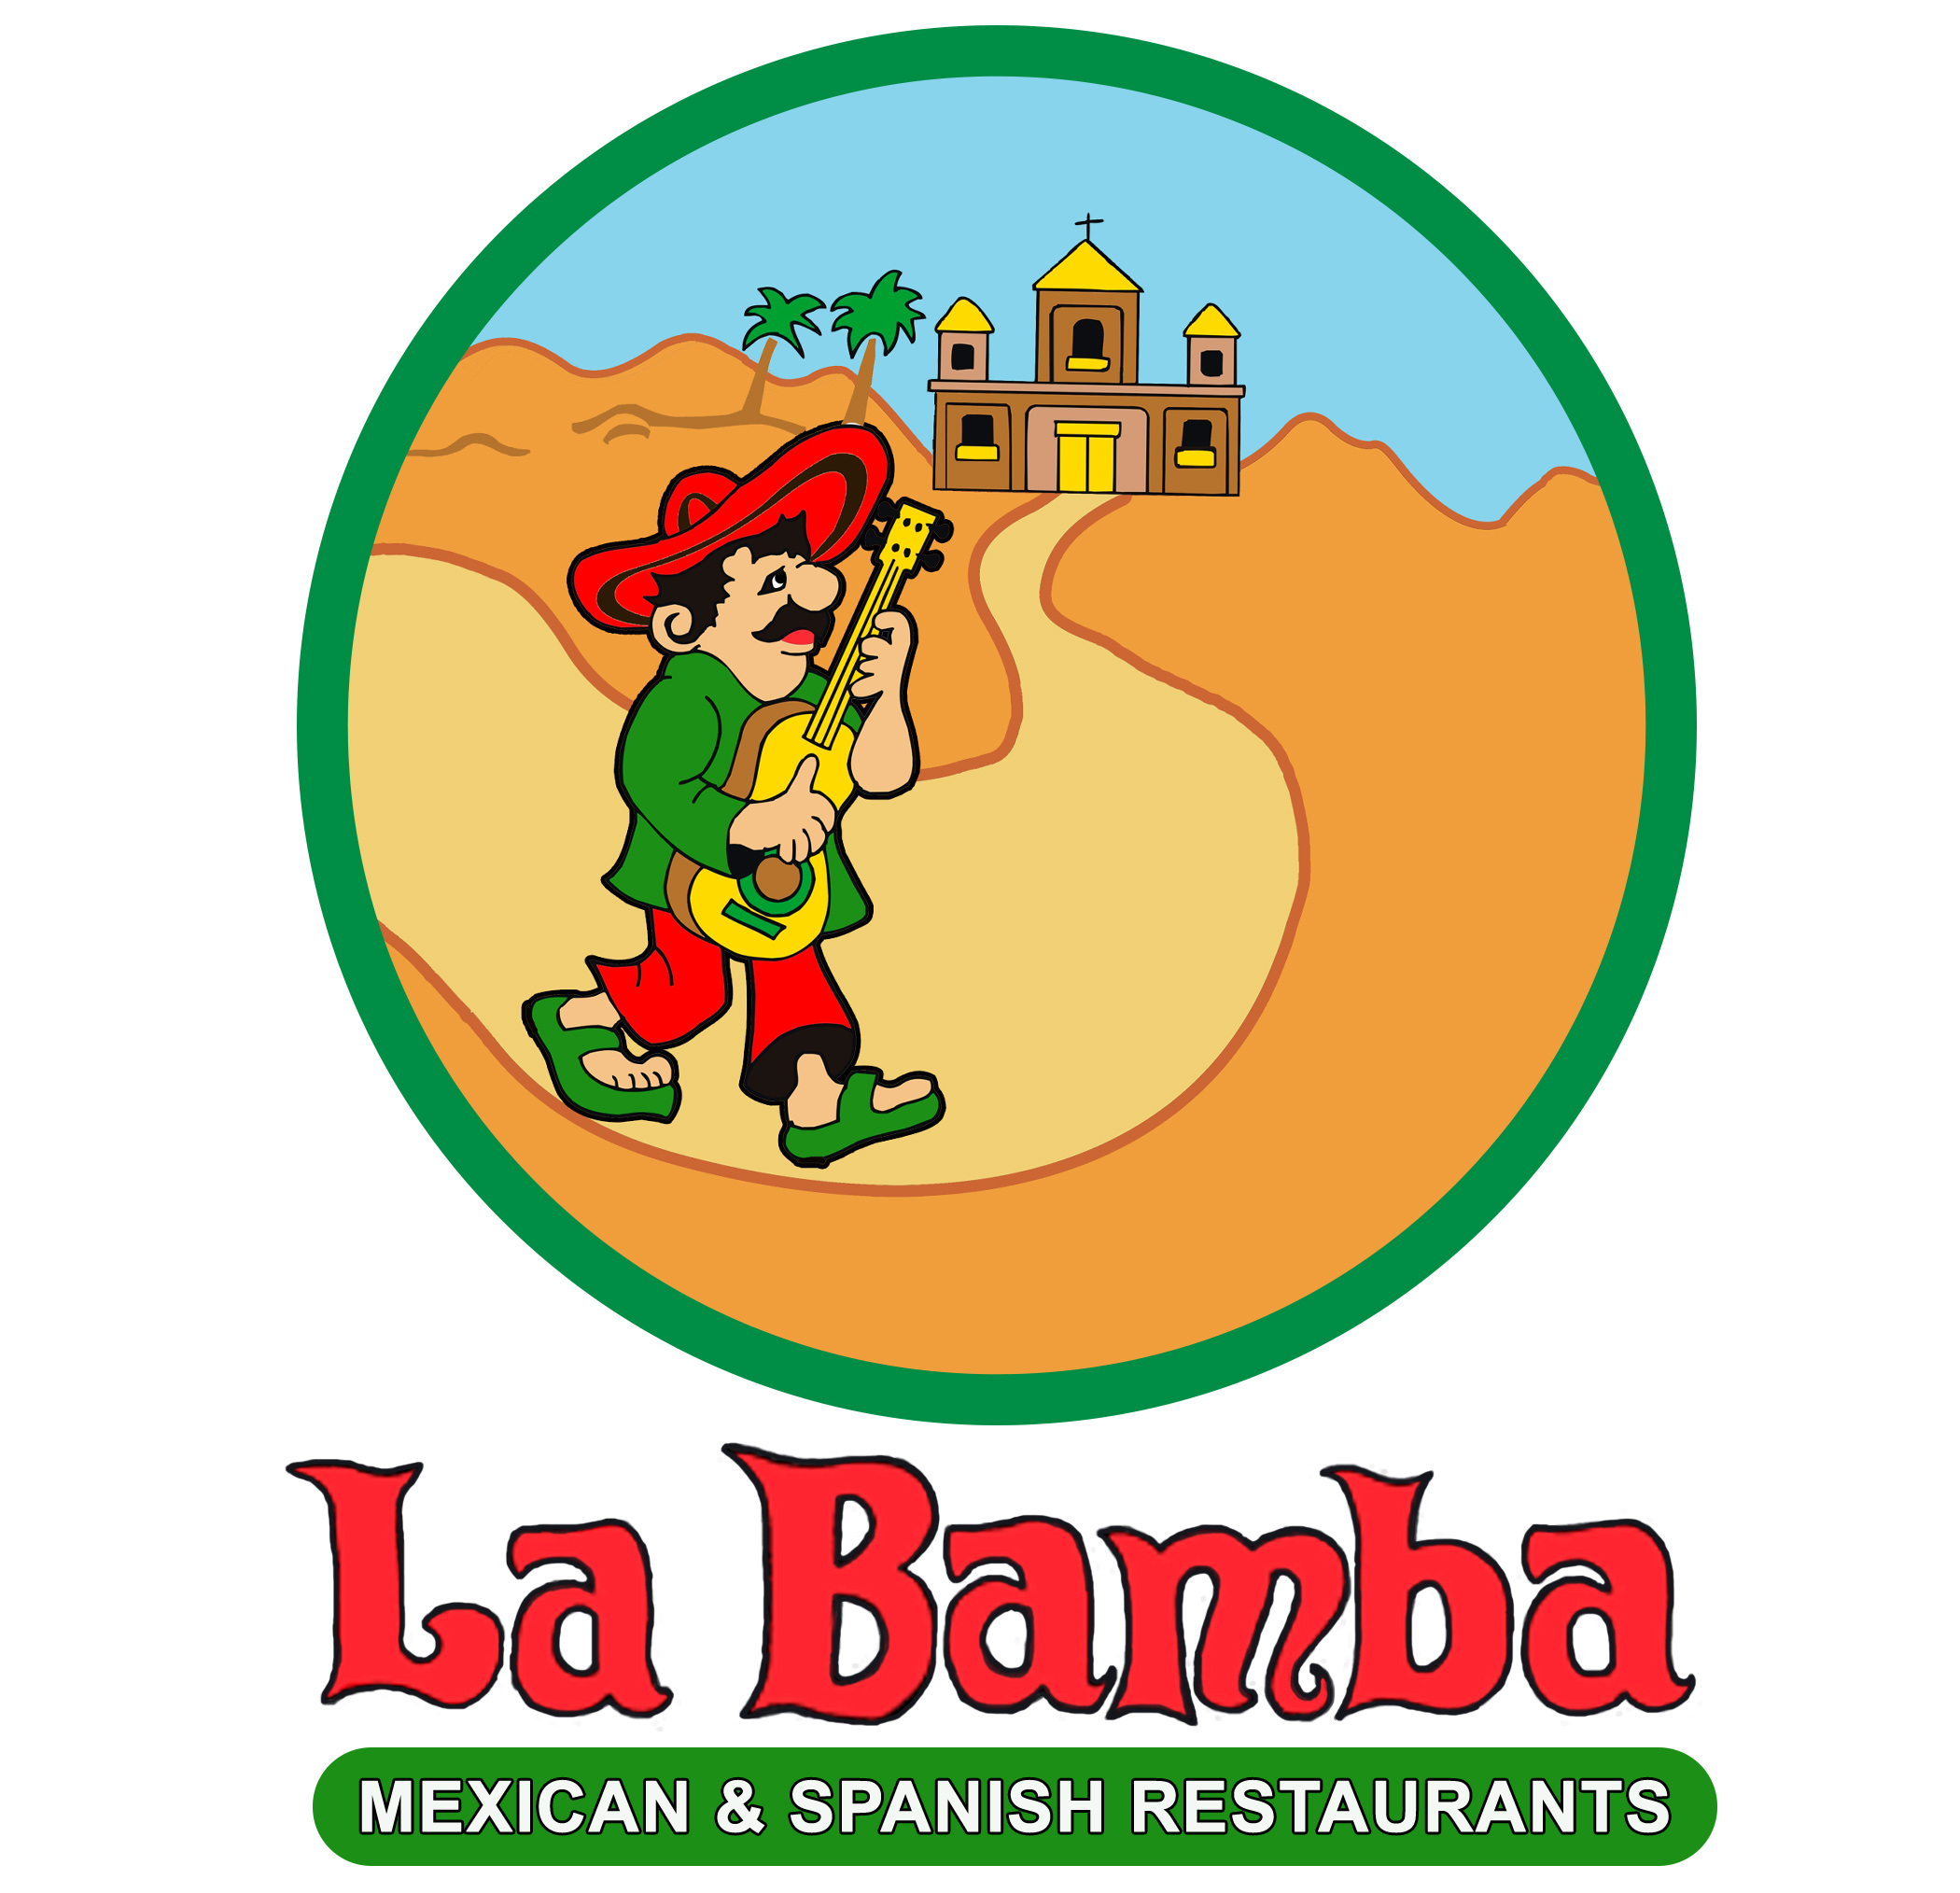 La Bamba II Mexican and Spanish Restaurant-Margate